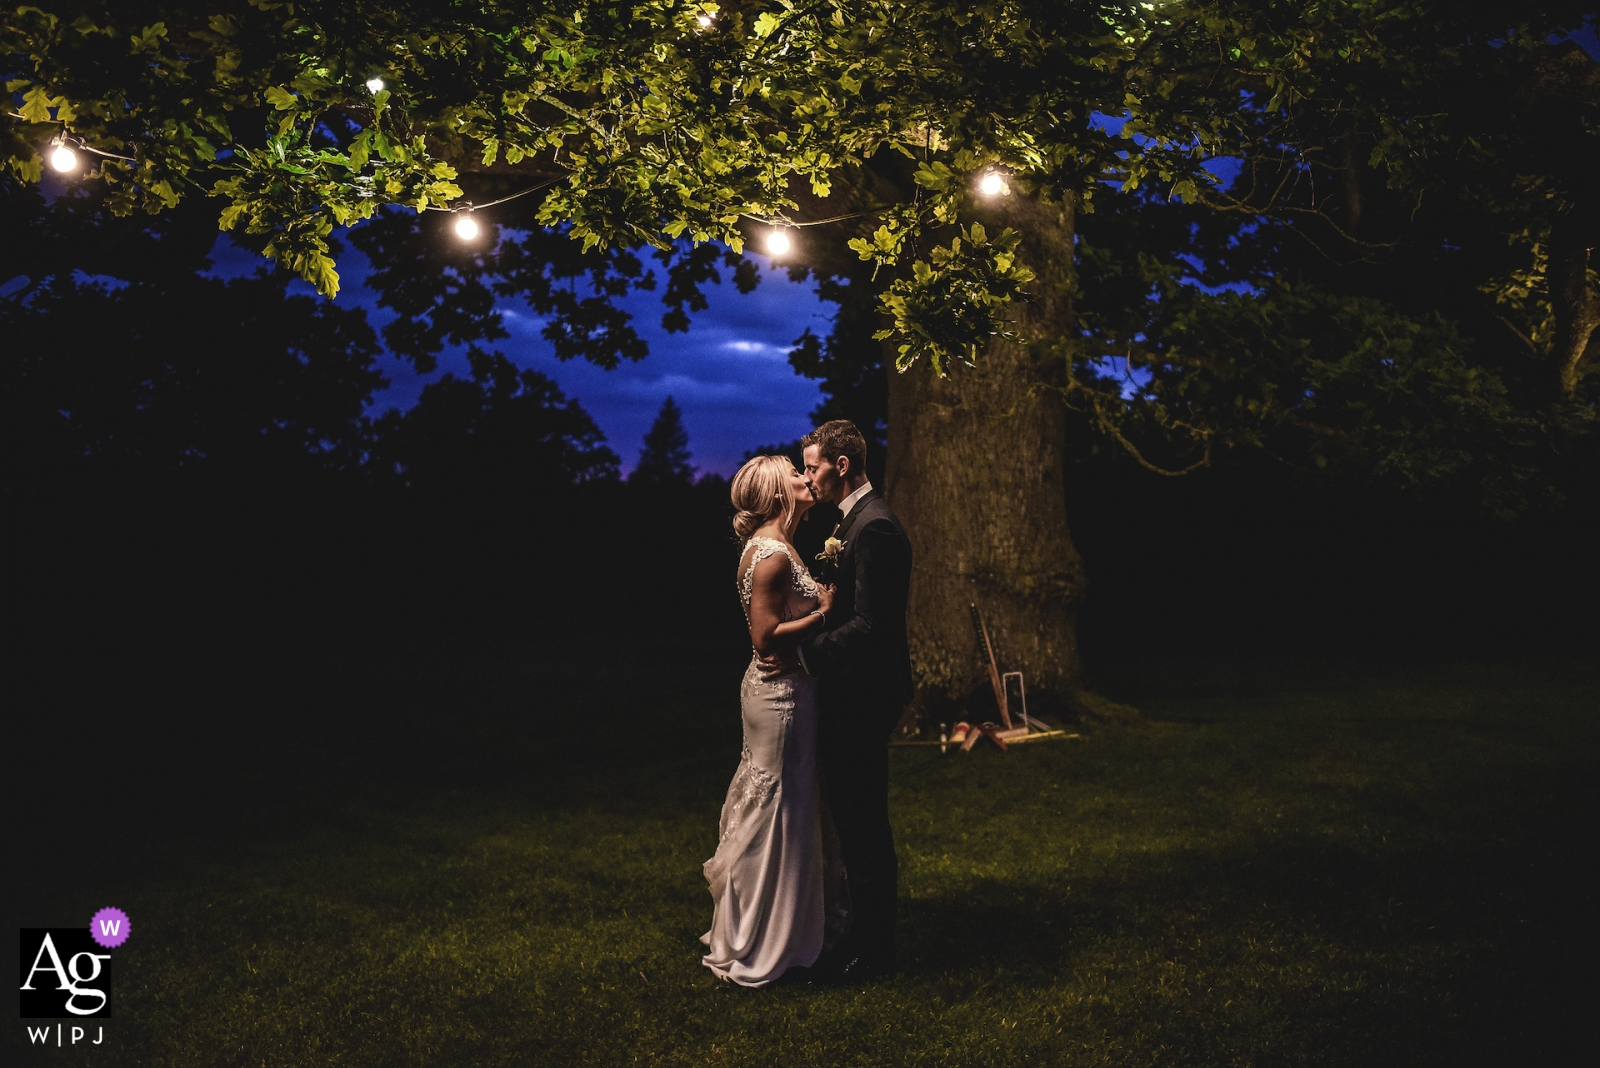 Ewa Figaszewska is an artistic wedding photographer for Dublin